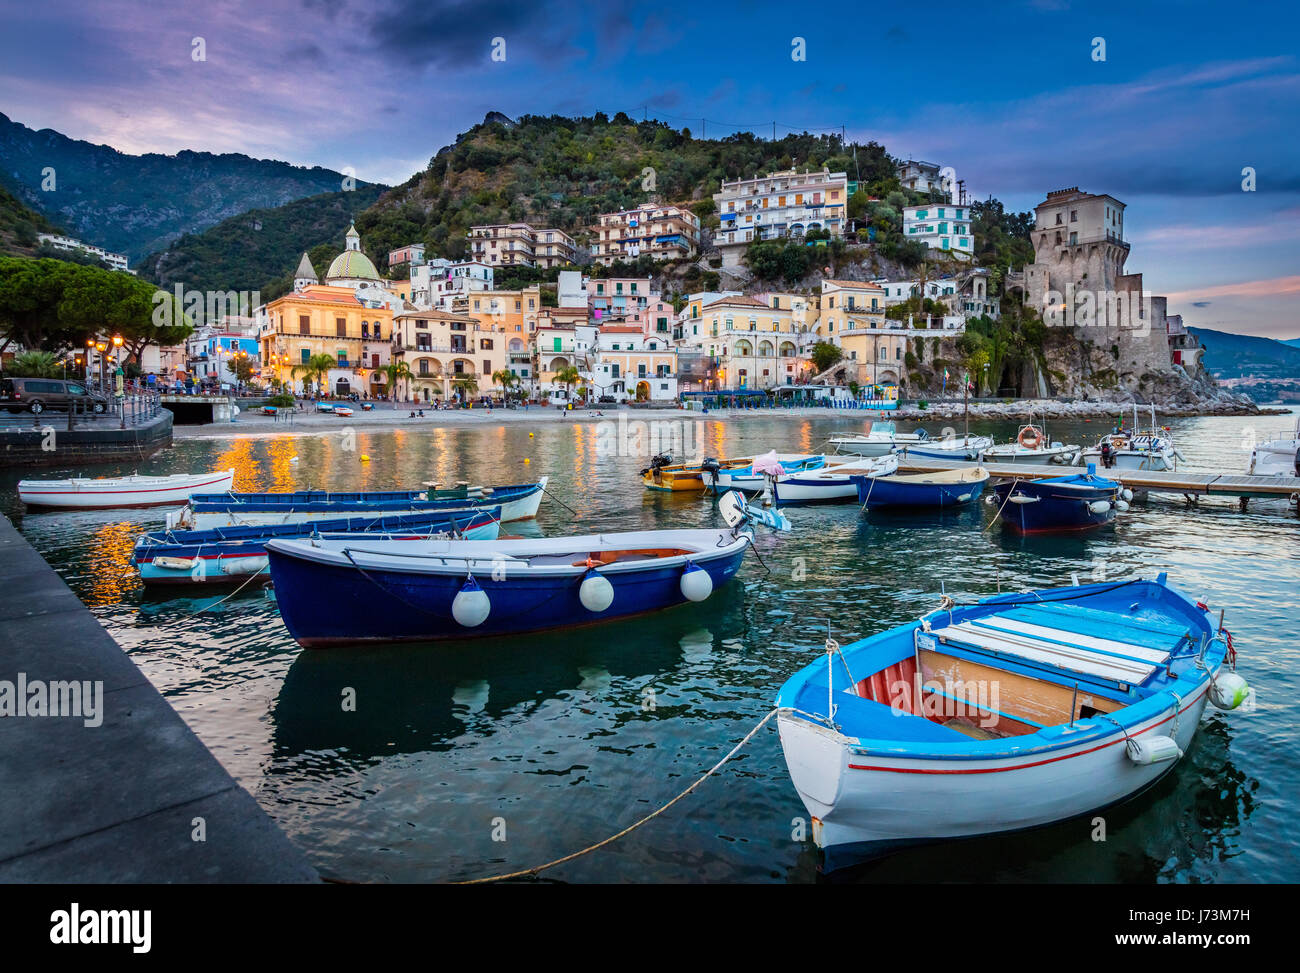 Cetara is a town and comune in the province of Salerno in the Campania region of south-western Italy. It is located - Stock Image